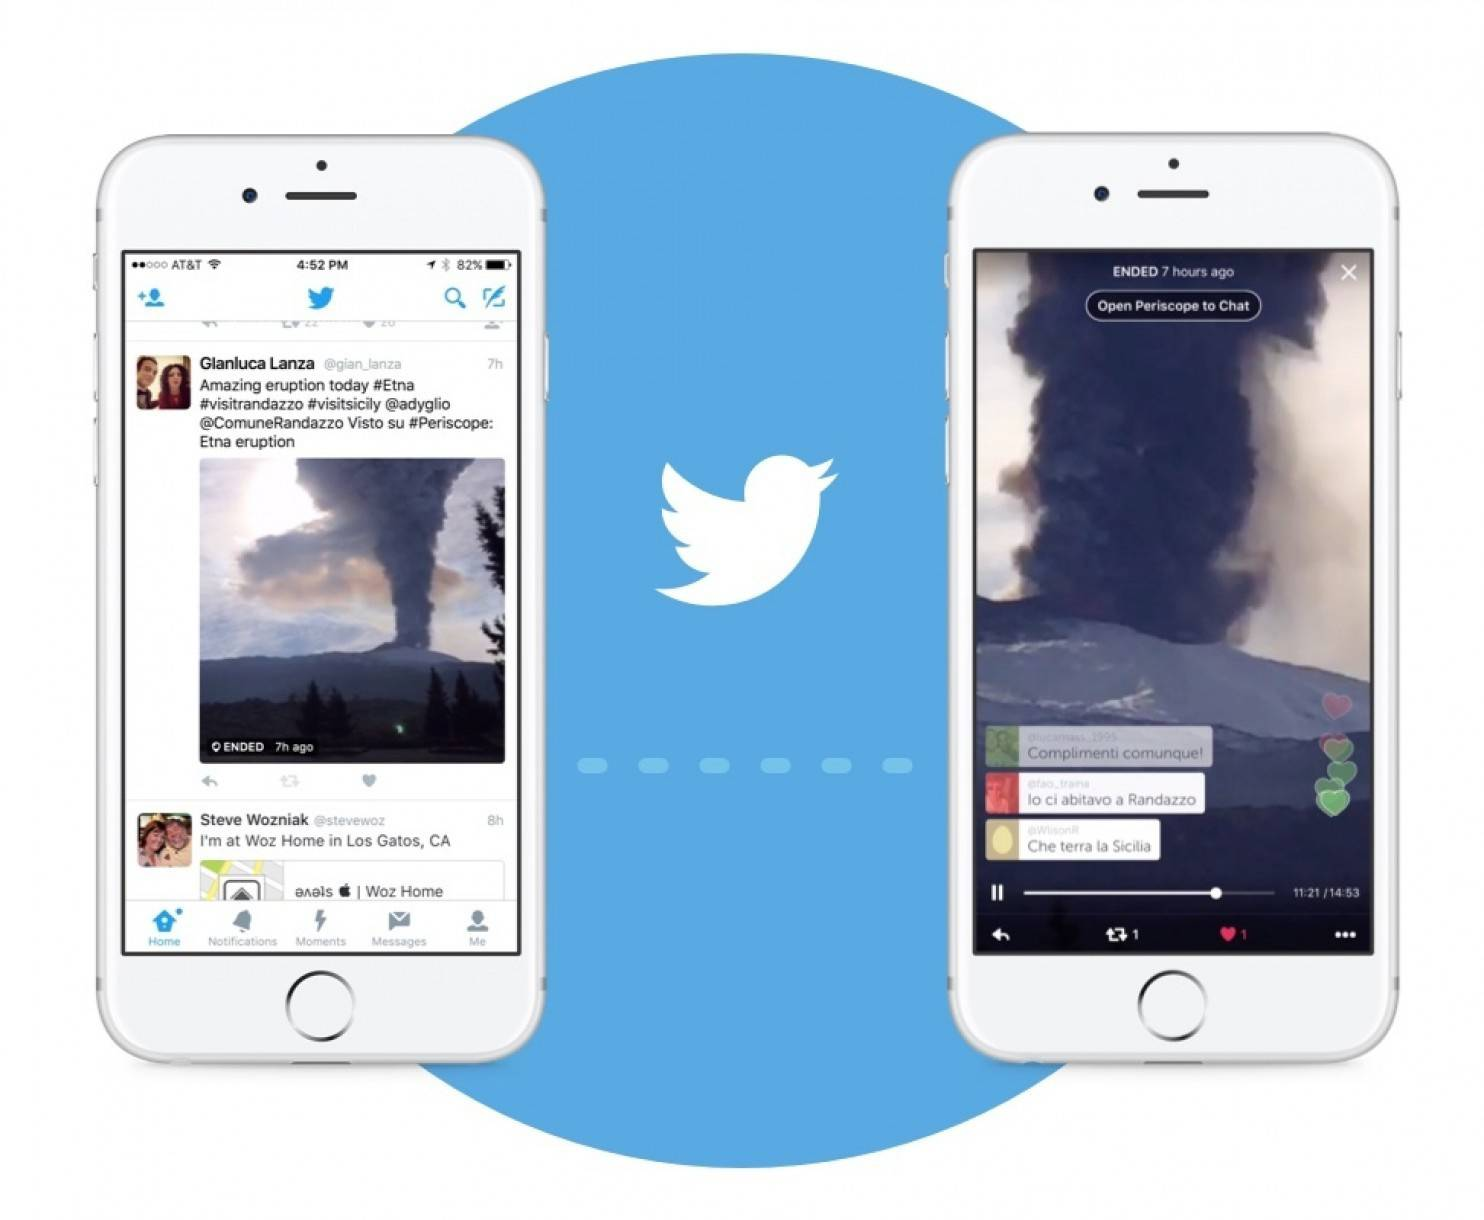 Twitter users are now be able to post and view Periscope video feeds directly from their main streams, making it easier for the average Twitter user to see the live video feeds from Periscope users. Previously, users could put links to Periscope streams in their tweets, but not embed the actual video.